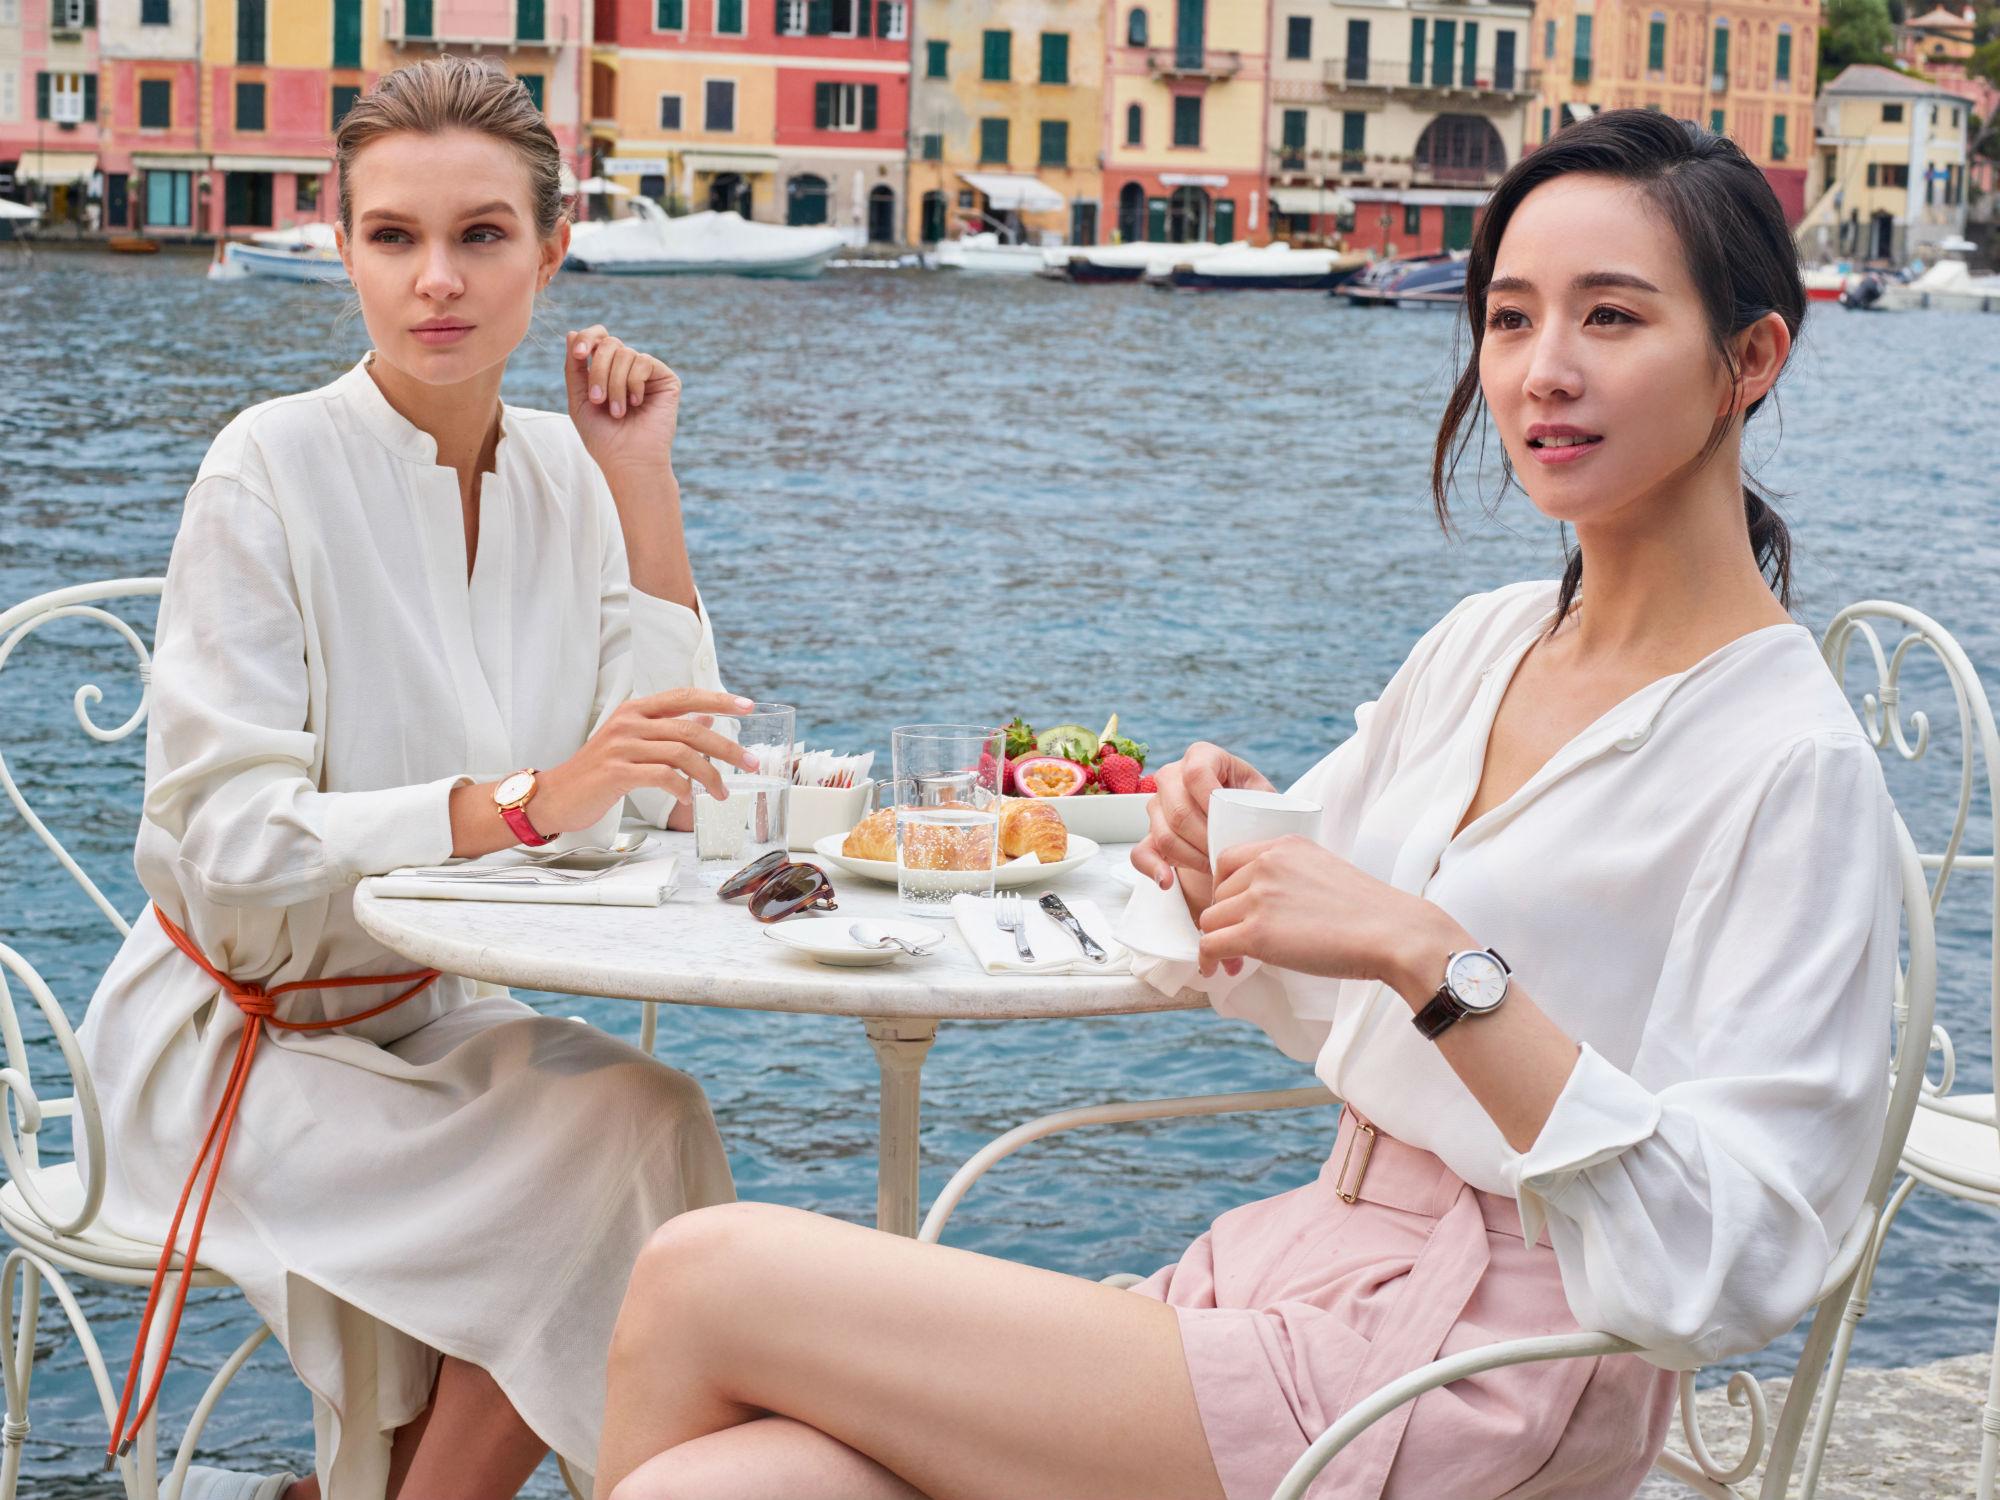 See more from the latest watch from IWC as modelled by Josephine Skriver and Ning Chang